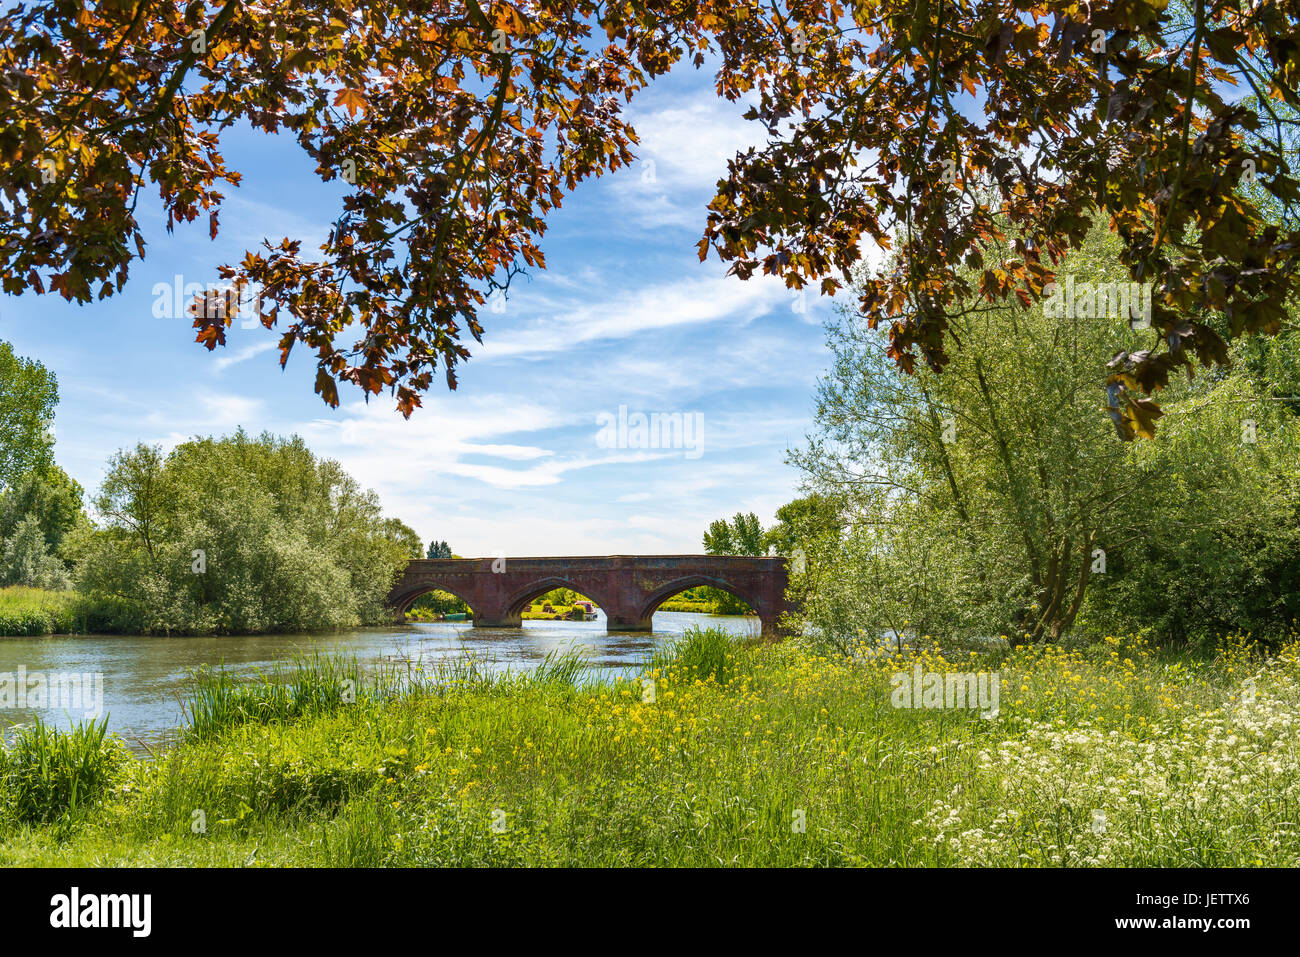 Clifton Hampden Bridge over Thames, Oxfordshire, UK - Stock Image